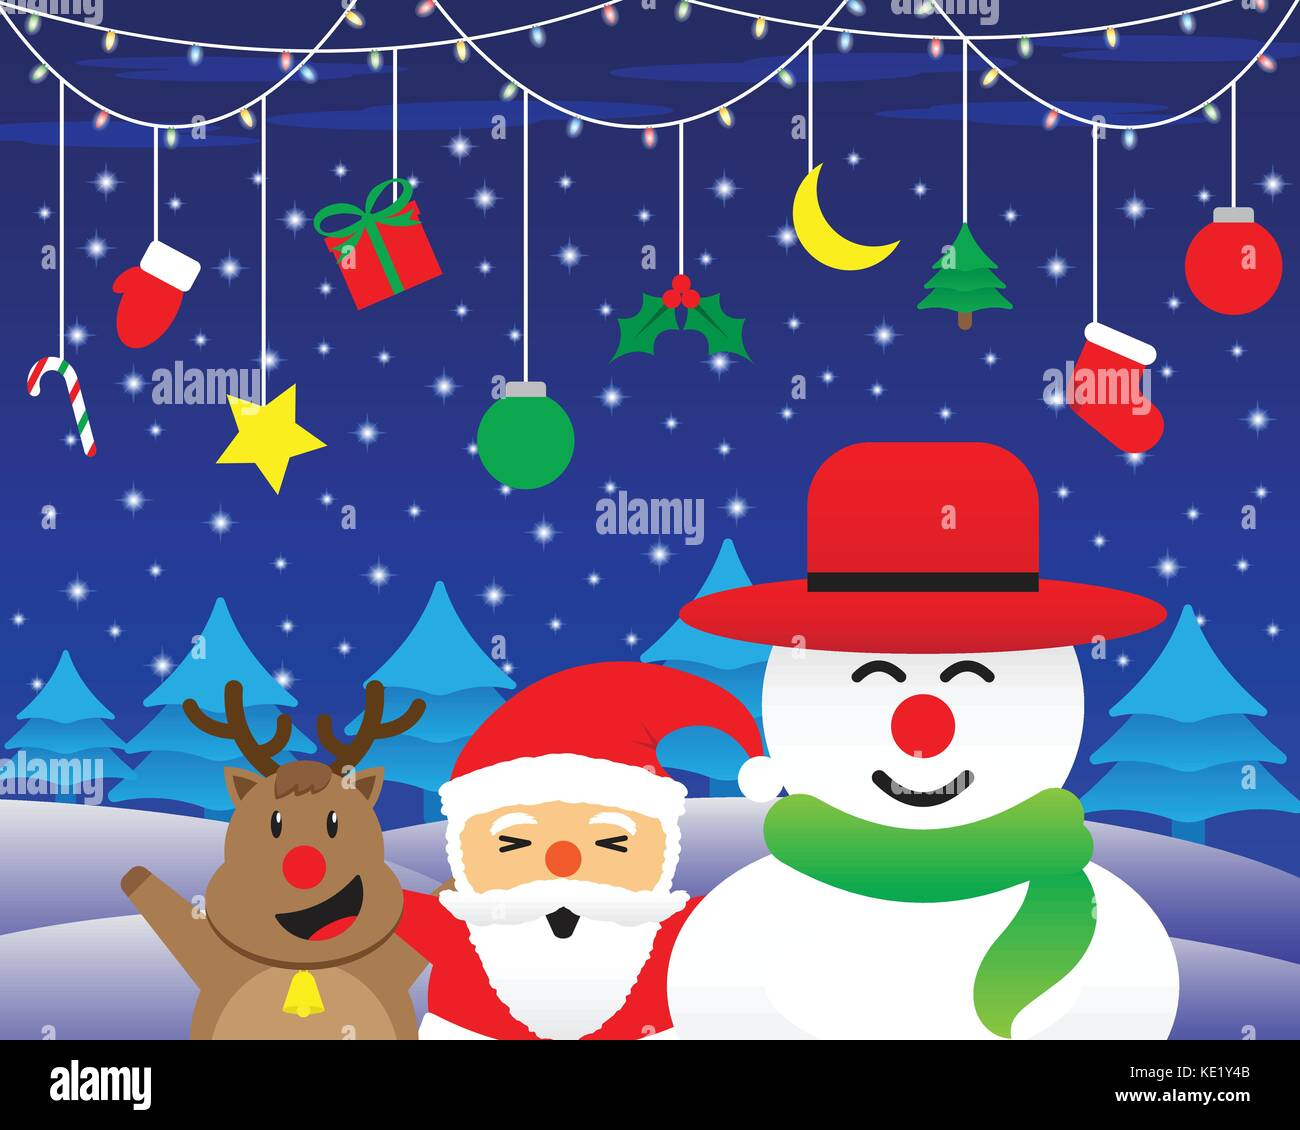 Merry Christmas Cute Reindeer Plump Santa Claus And Chubby Snowman Is Standing Happily